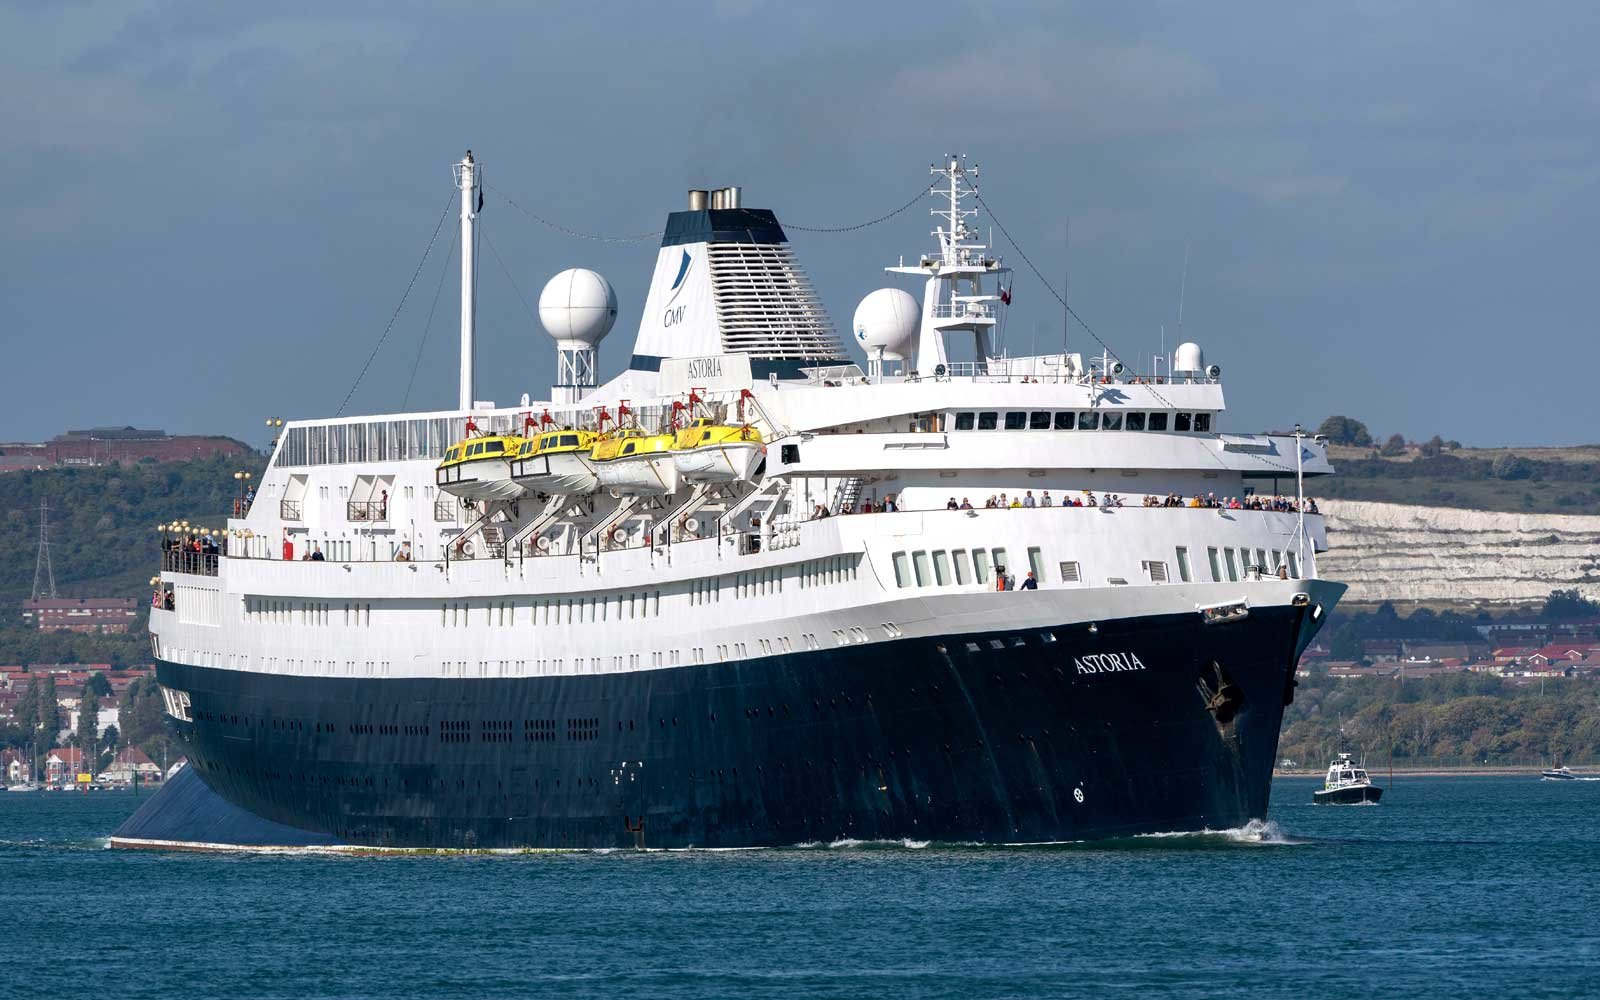 MV Astoria departing Portsmouth England UK. Came into service in 1946 and is the second oldest cruise ship in service.